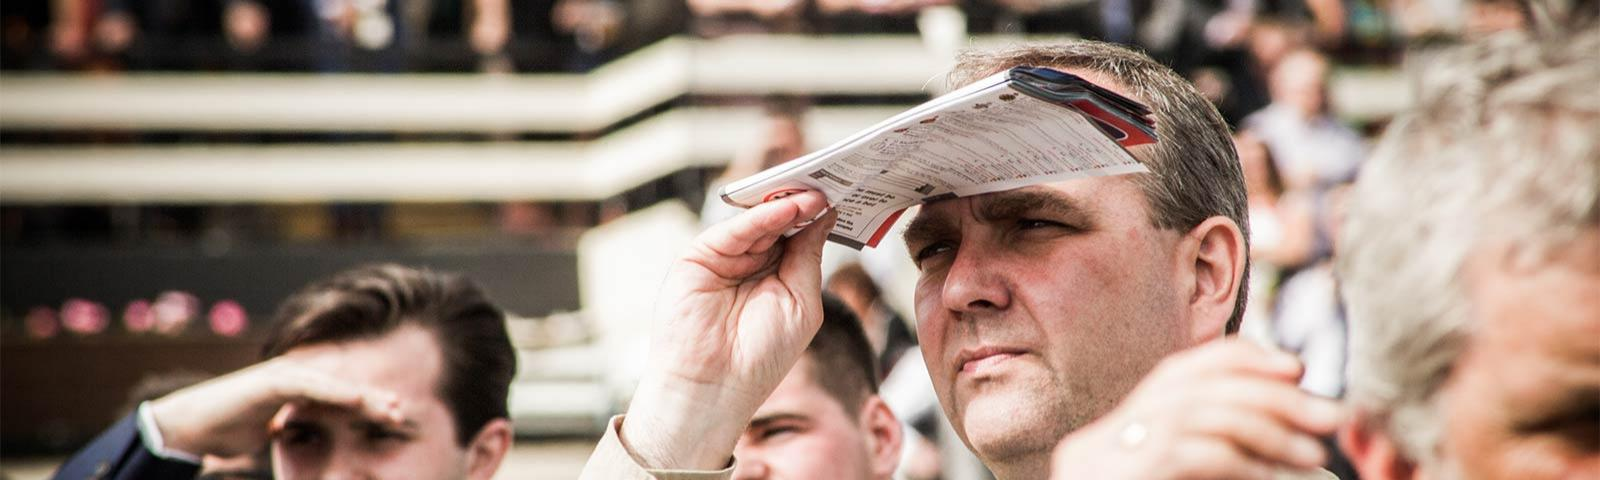 Gentleman shielding his eyes from the sun while watching racing.